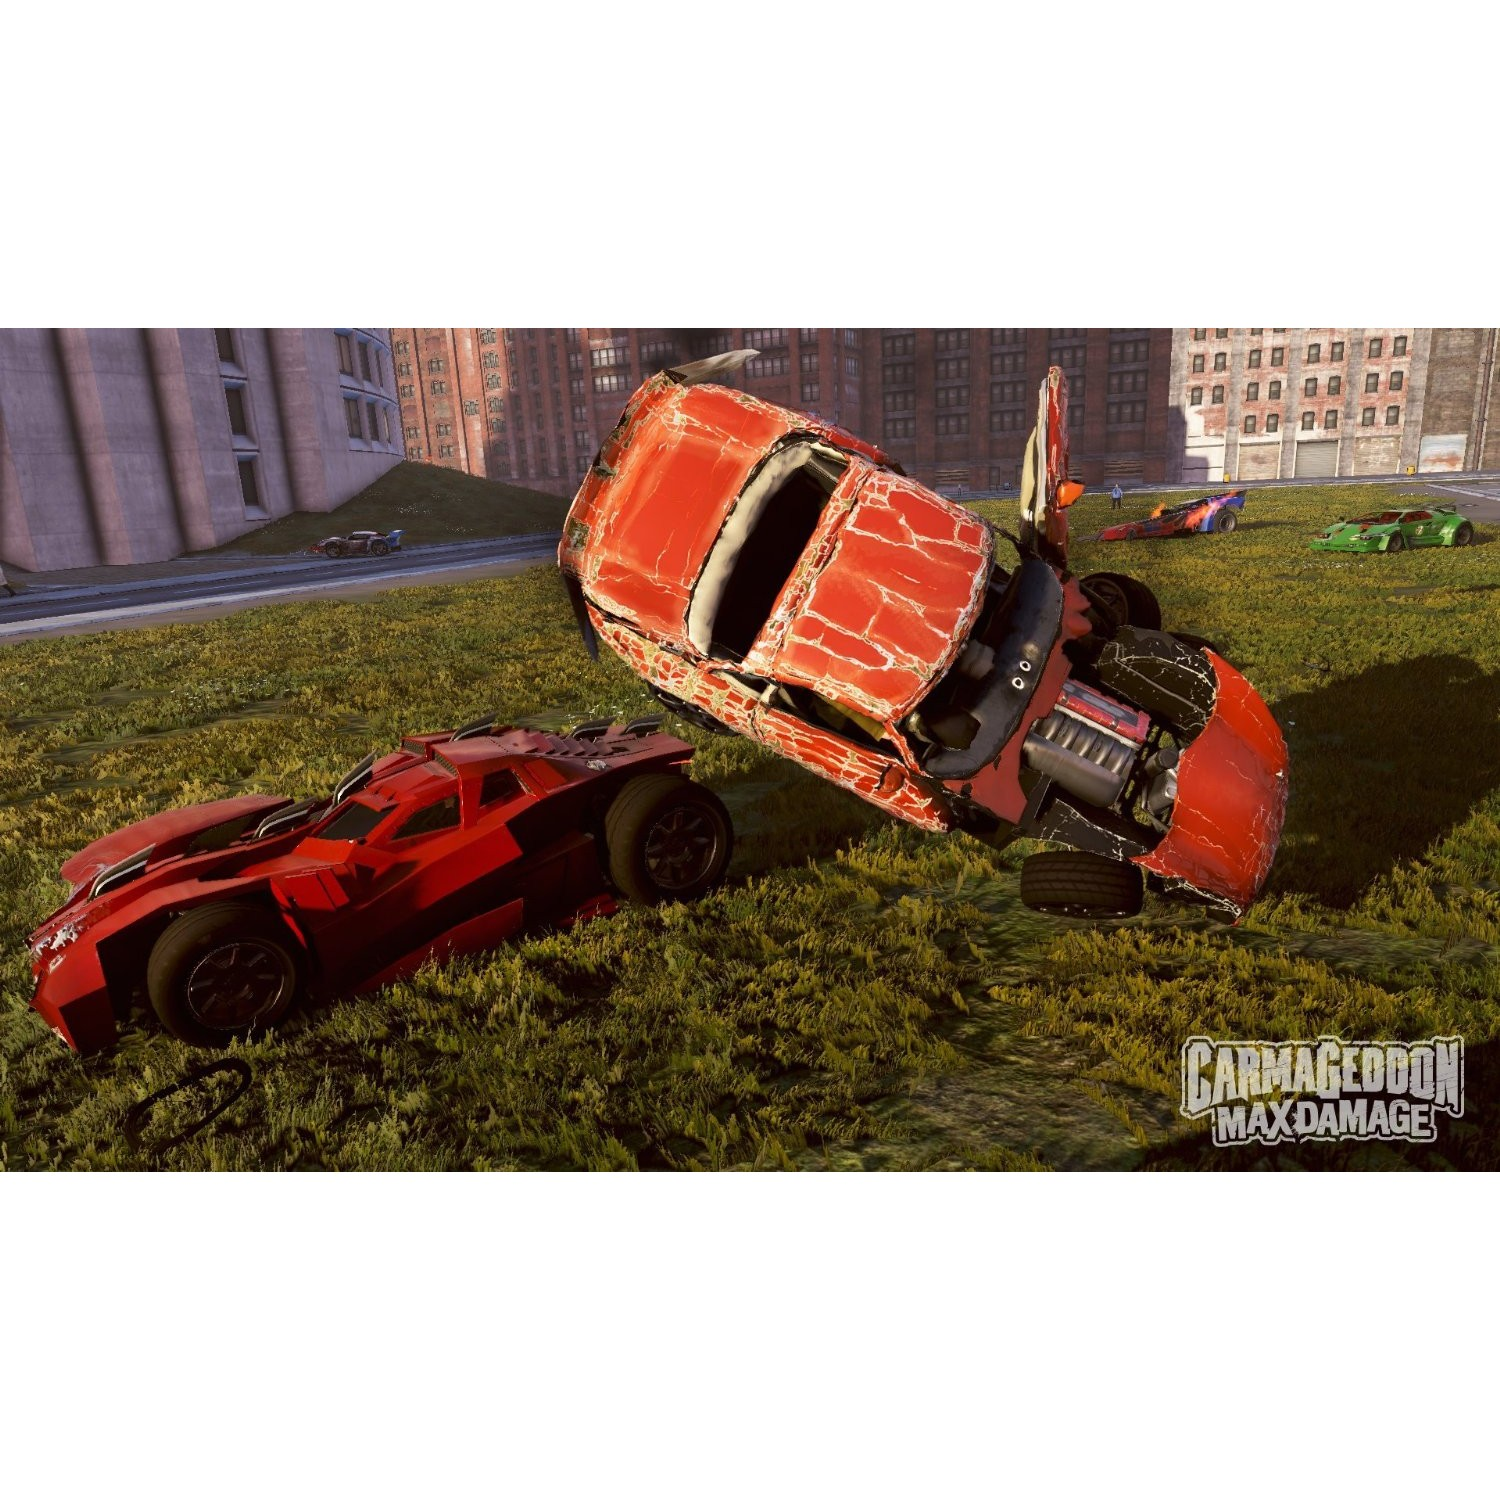 Joc Carmageddon: Max Damage Ps4 7